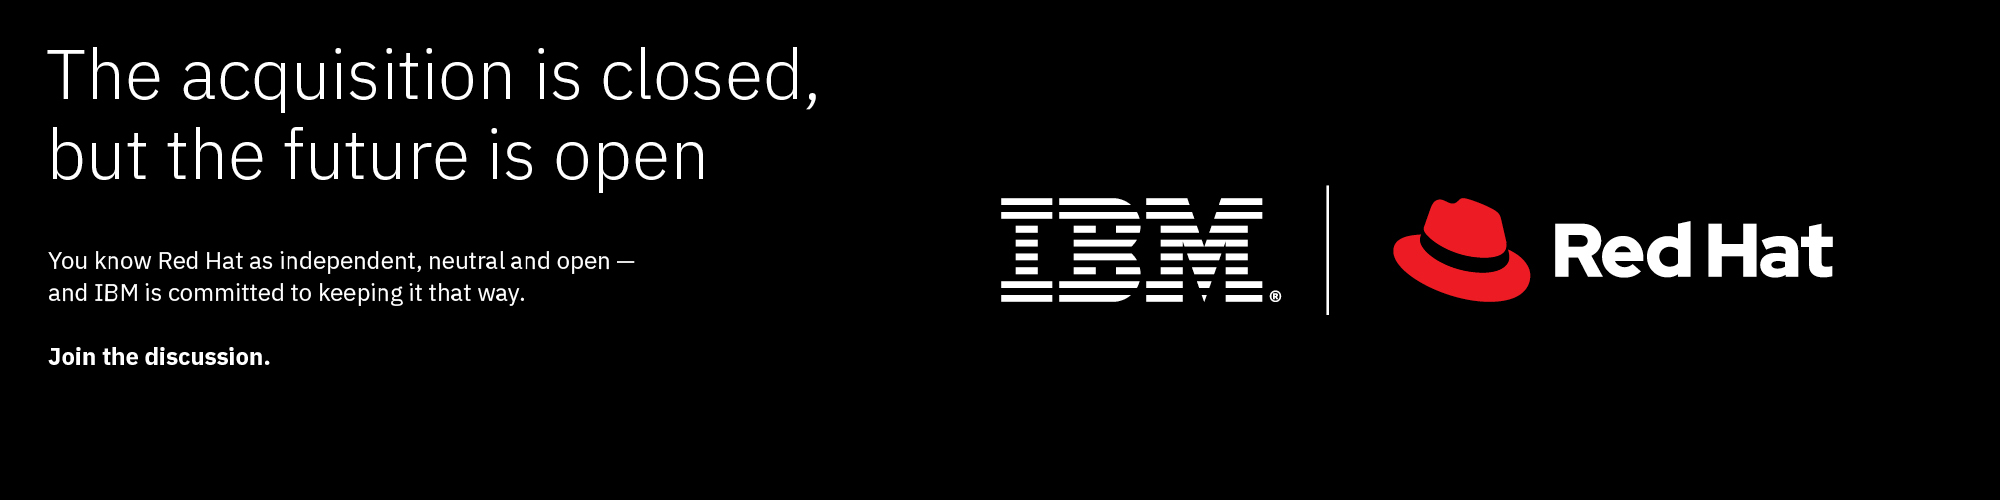 IBM and Red Hat banner with text that reads: The acquisition is closed, but the future is open. You know Red Hat as independent, neutral and open - and IBM is committed to keeping it that way. Join the discussion